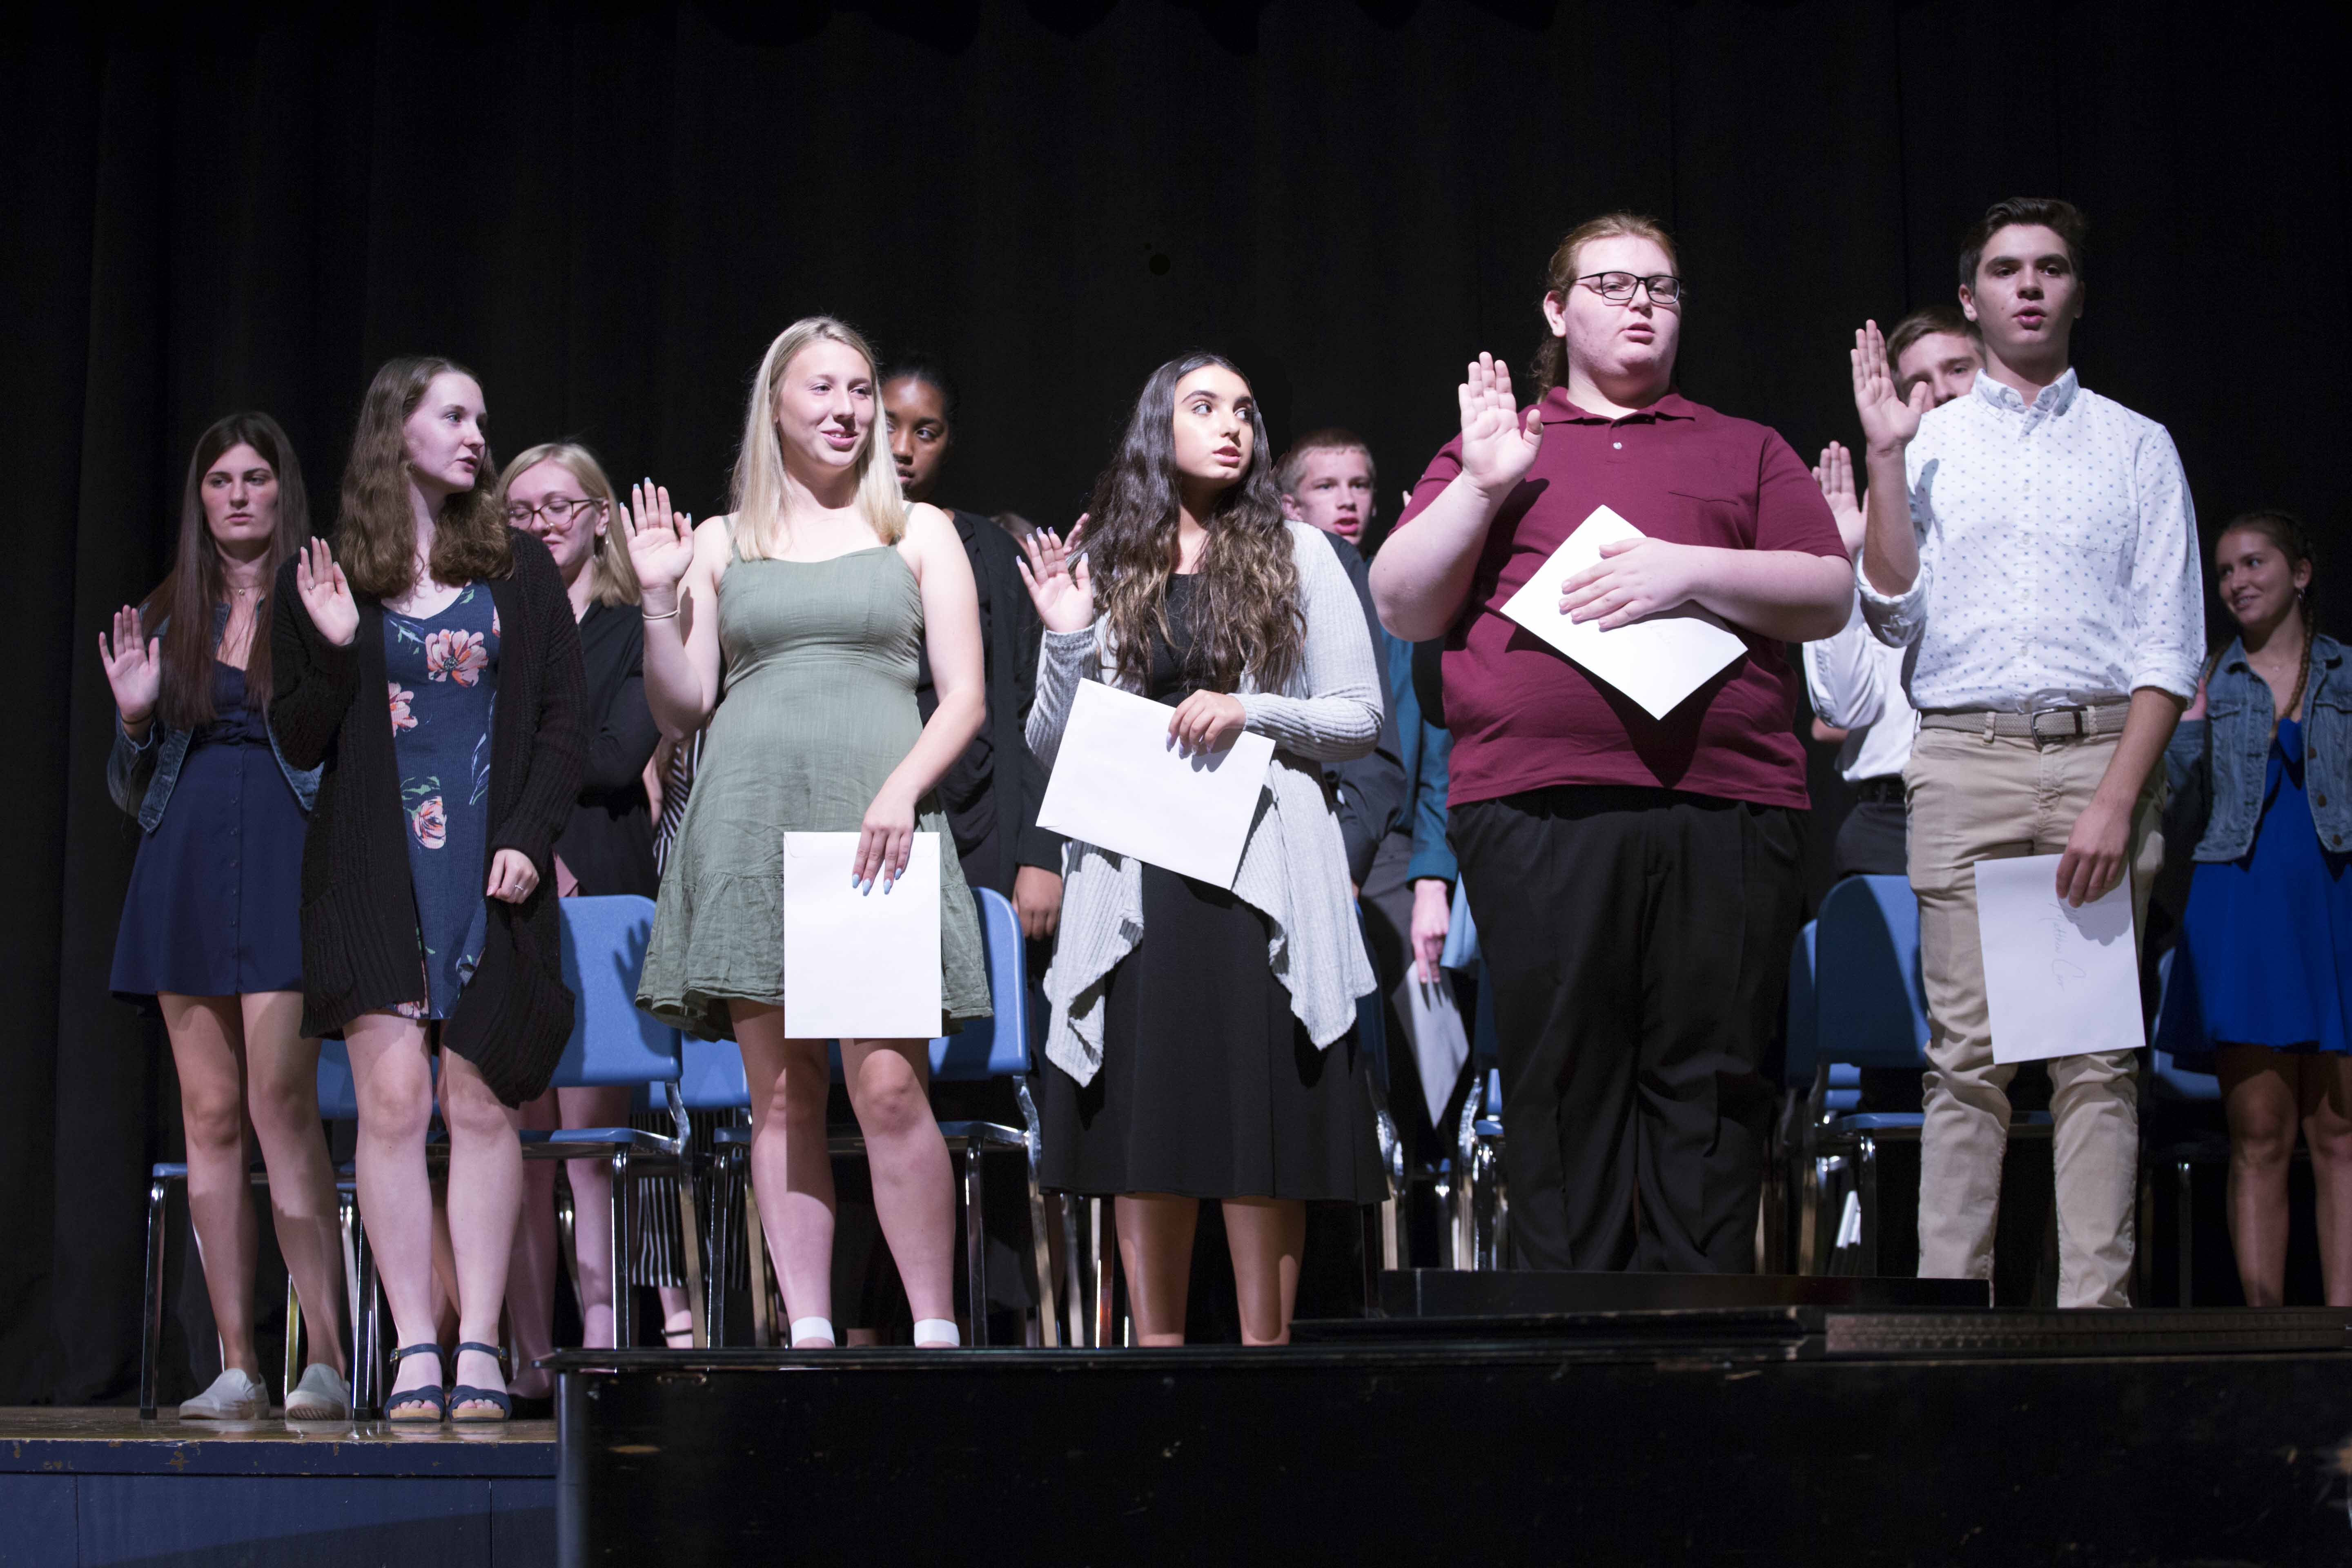 Catskill High School National Honor Society inductees on stage during the ceremony